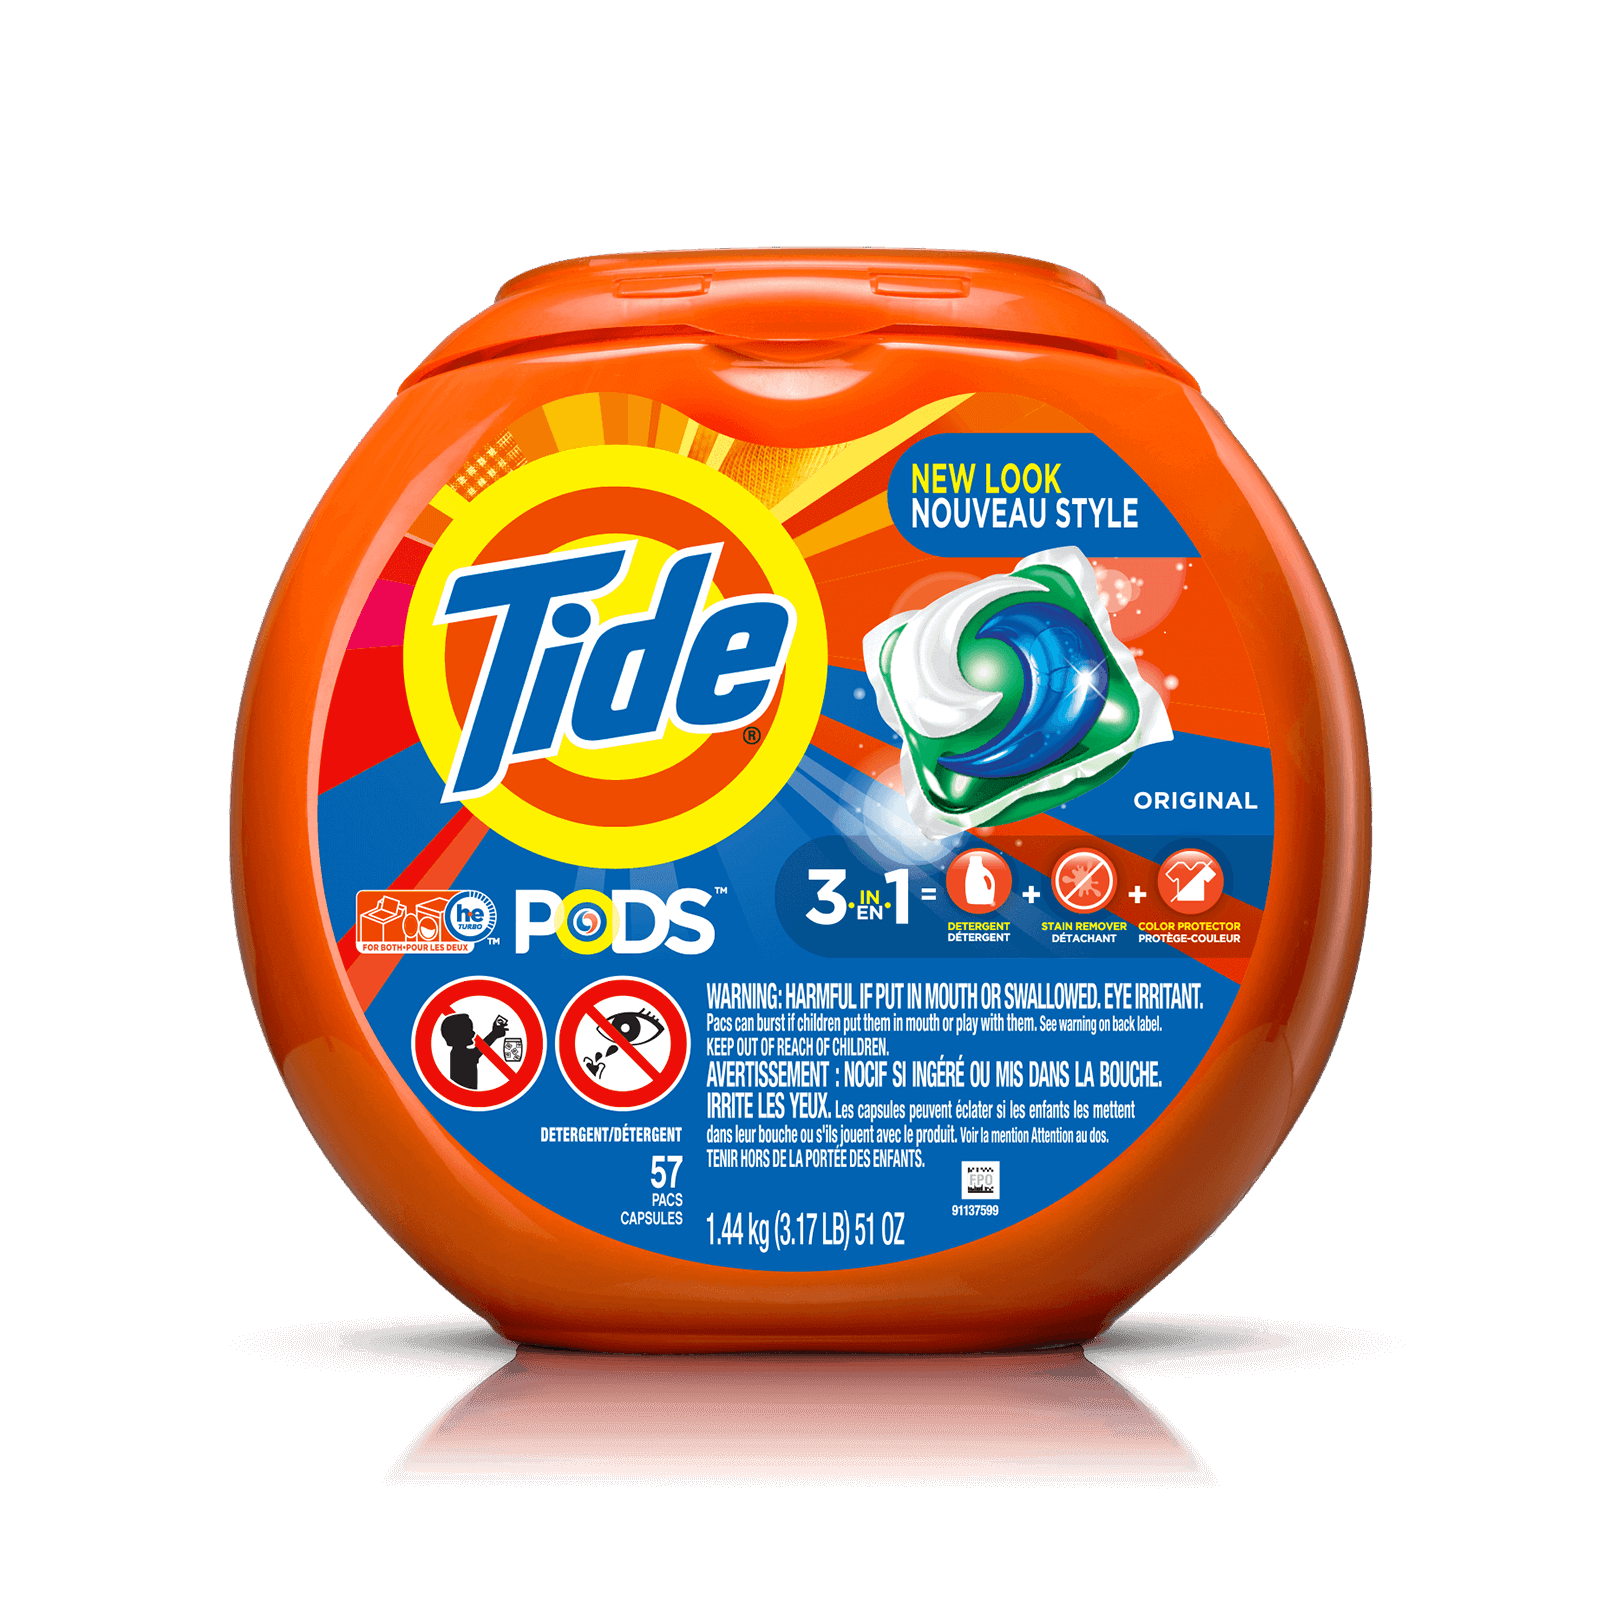 Tide Originla Laundry Detergent Pods Packaging Cleaning Tide